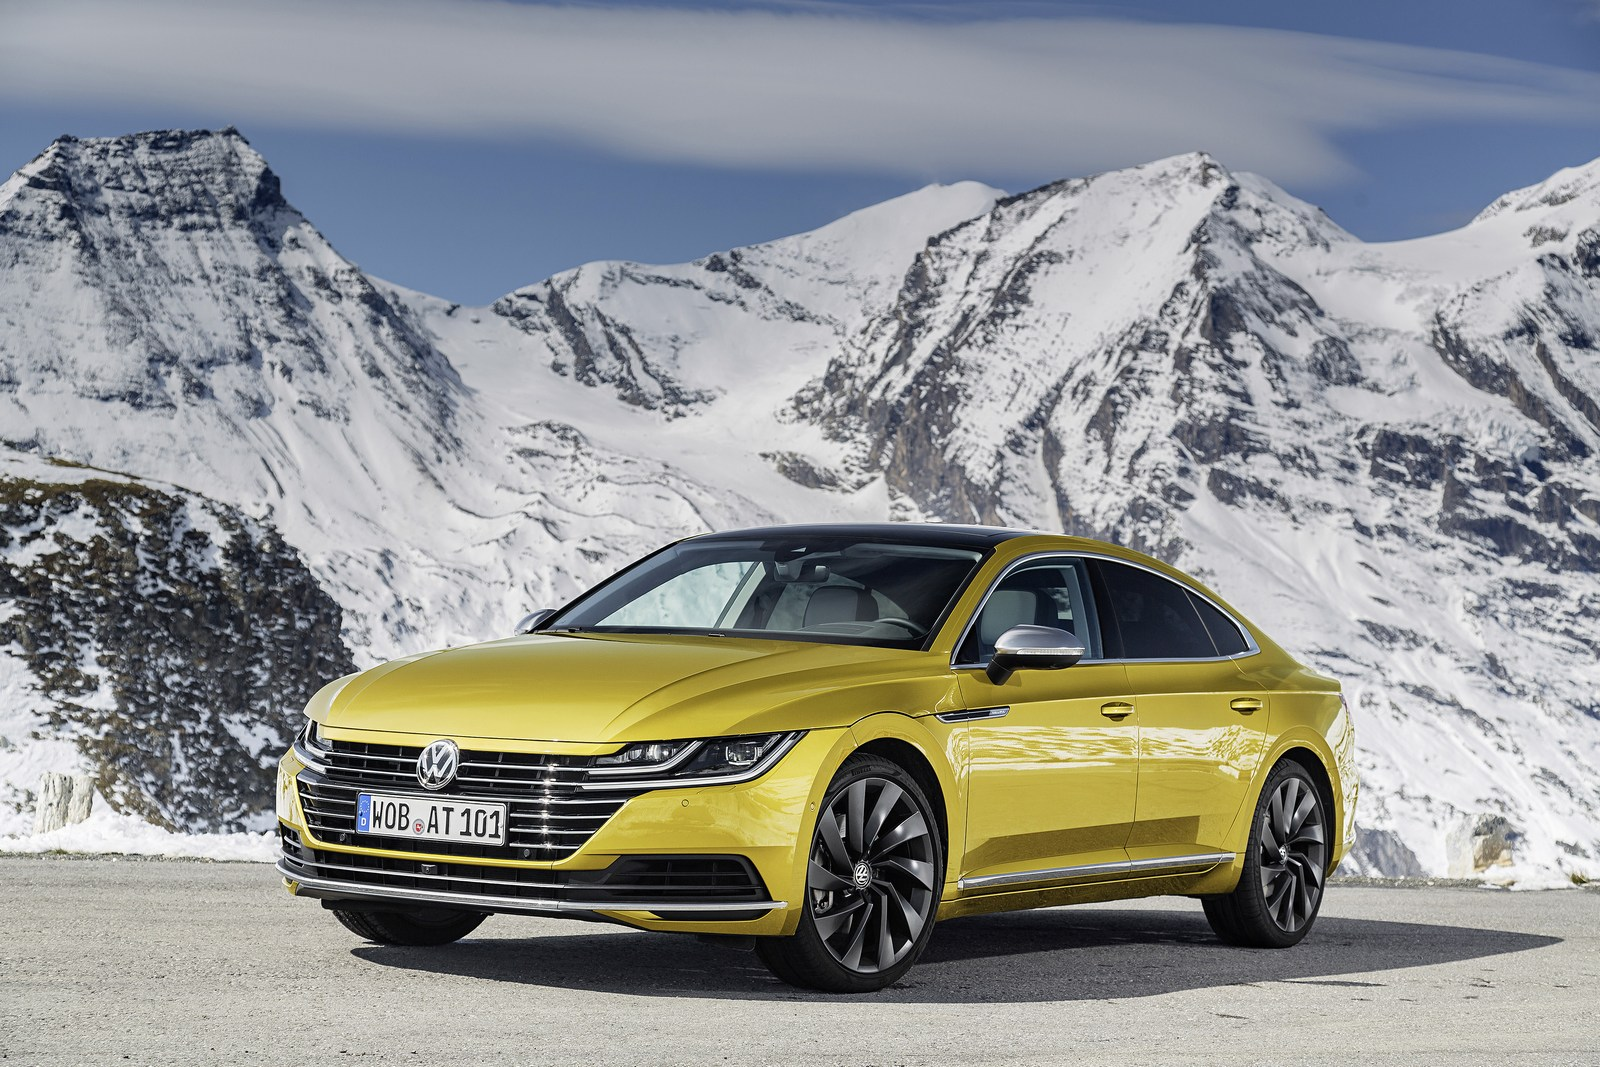 VW Arteon To Celebrate Its U.S. Debut In Chicago